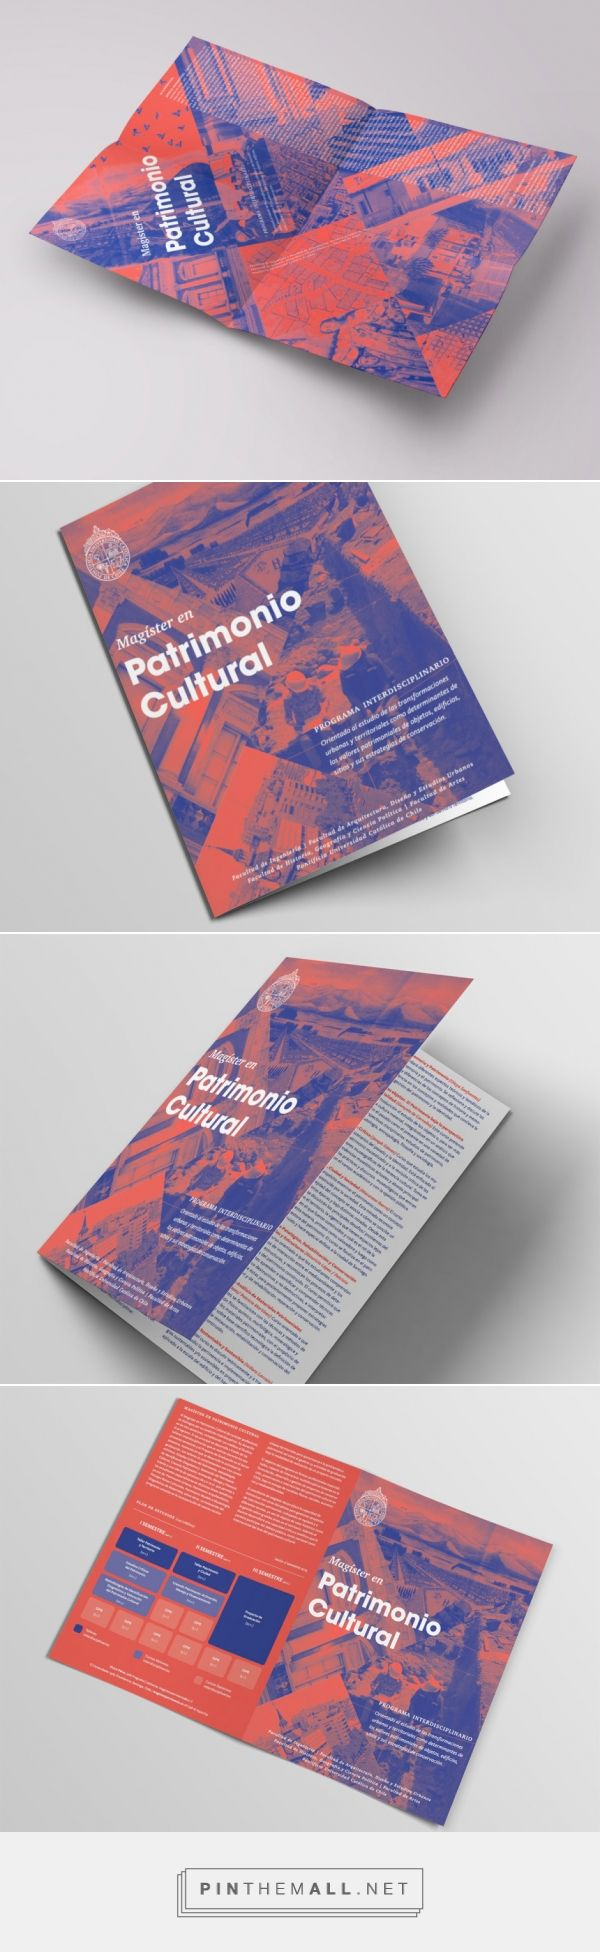 Poster Magister Patrimonio | Design by otrosperez.com  Design of a drop down poster for a Magister of Universidad Católica d Chile. - created via https://pinthemall.net